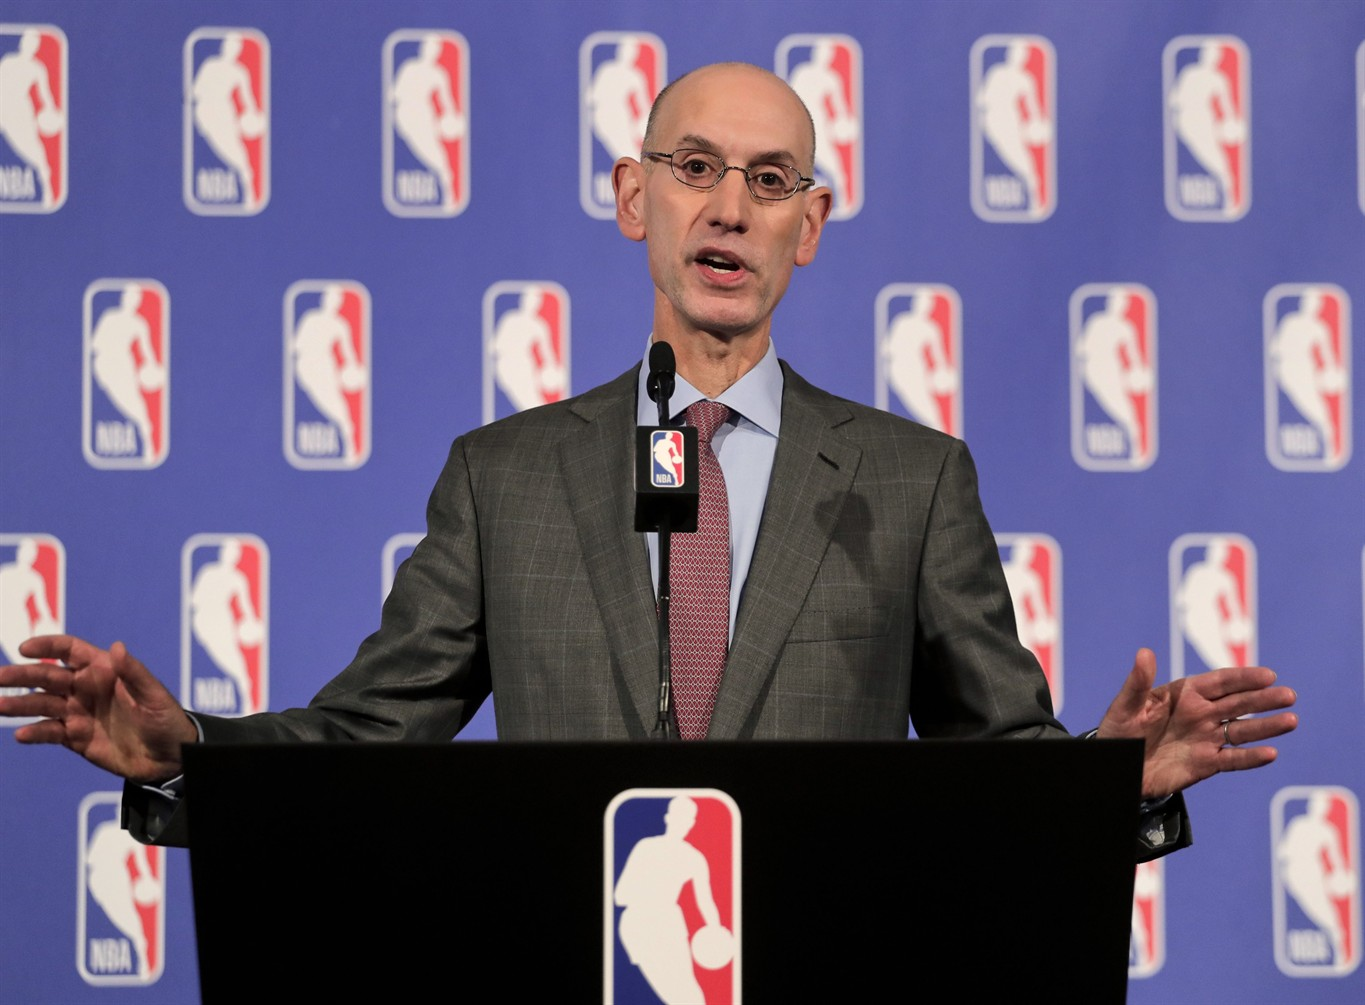 NBA Commissioner Adam Silver Expects Players To Stand For Anthem